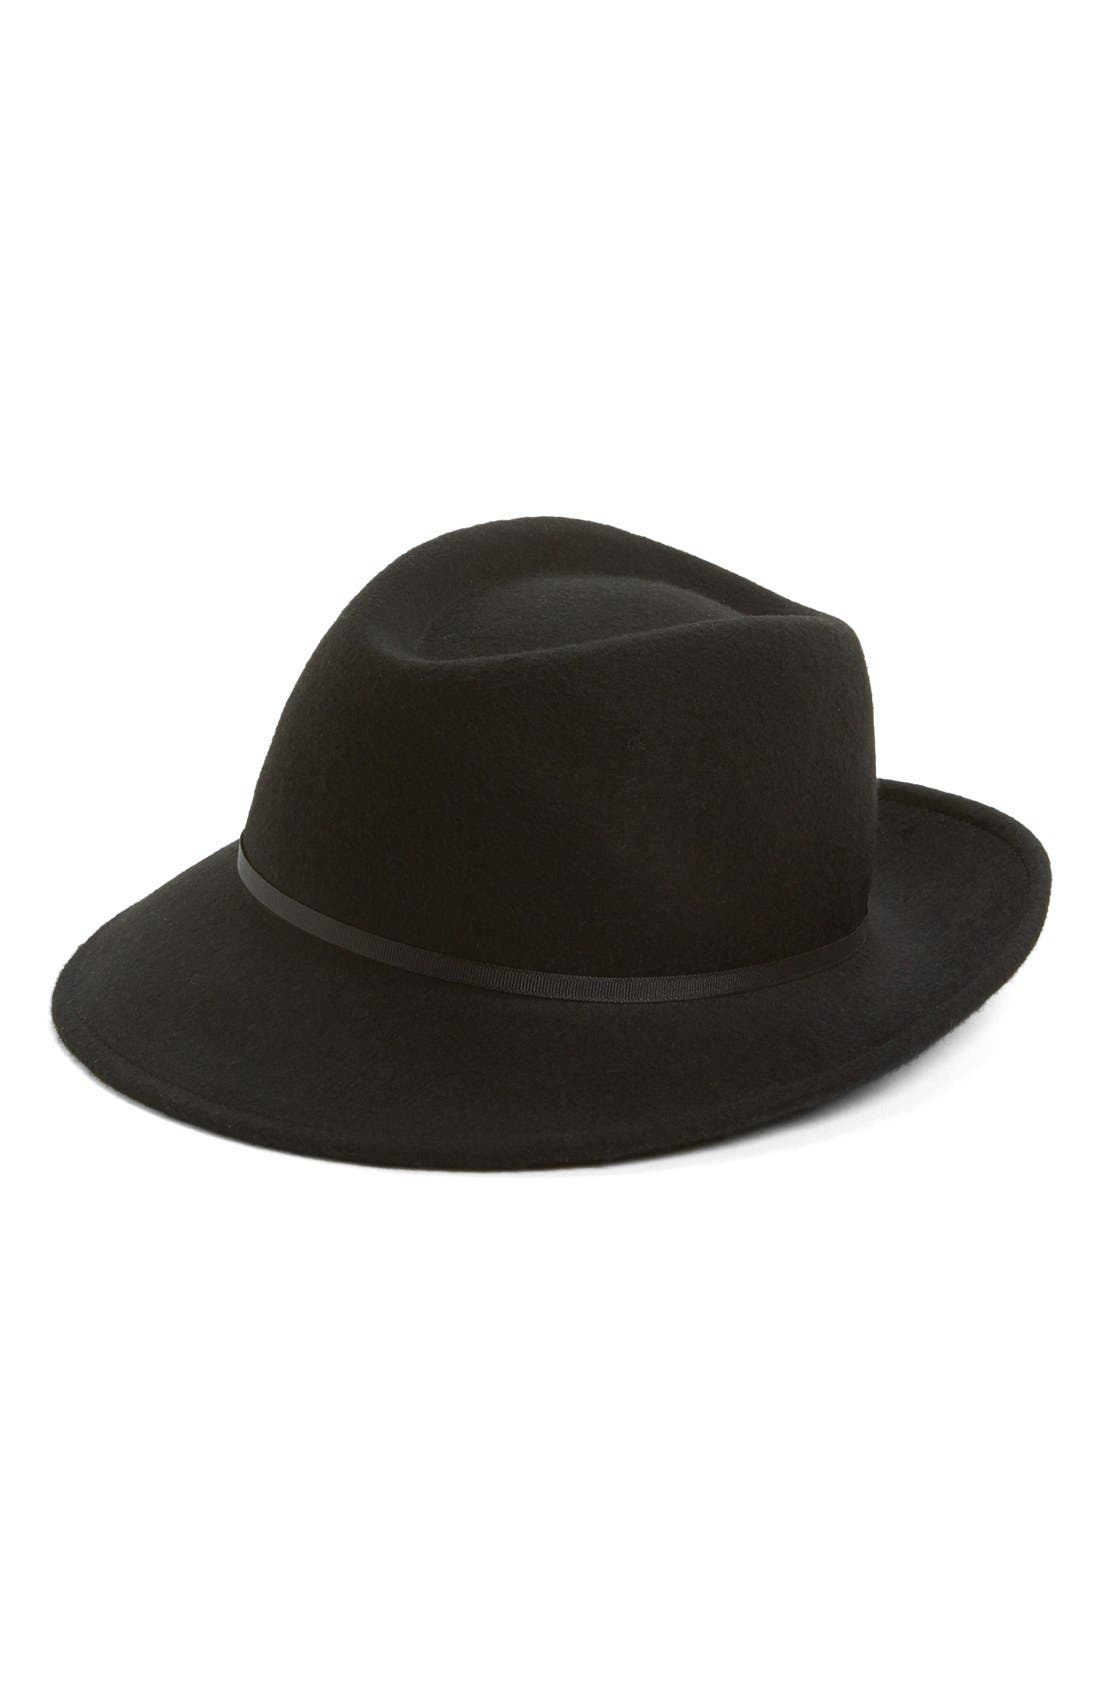 Alternate Image 1 Selected - Topshop Fedora